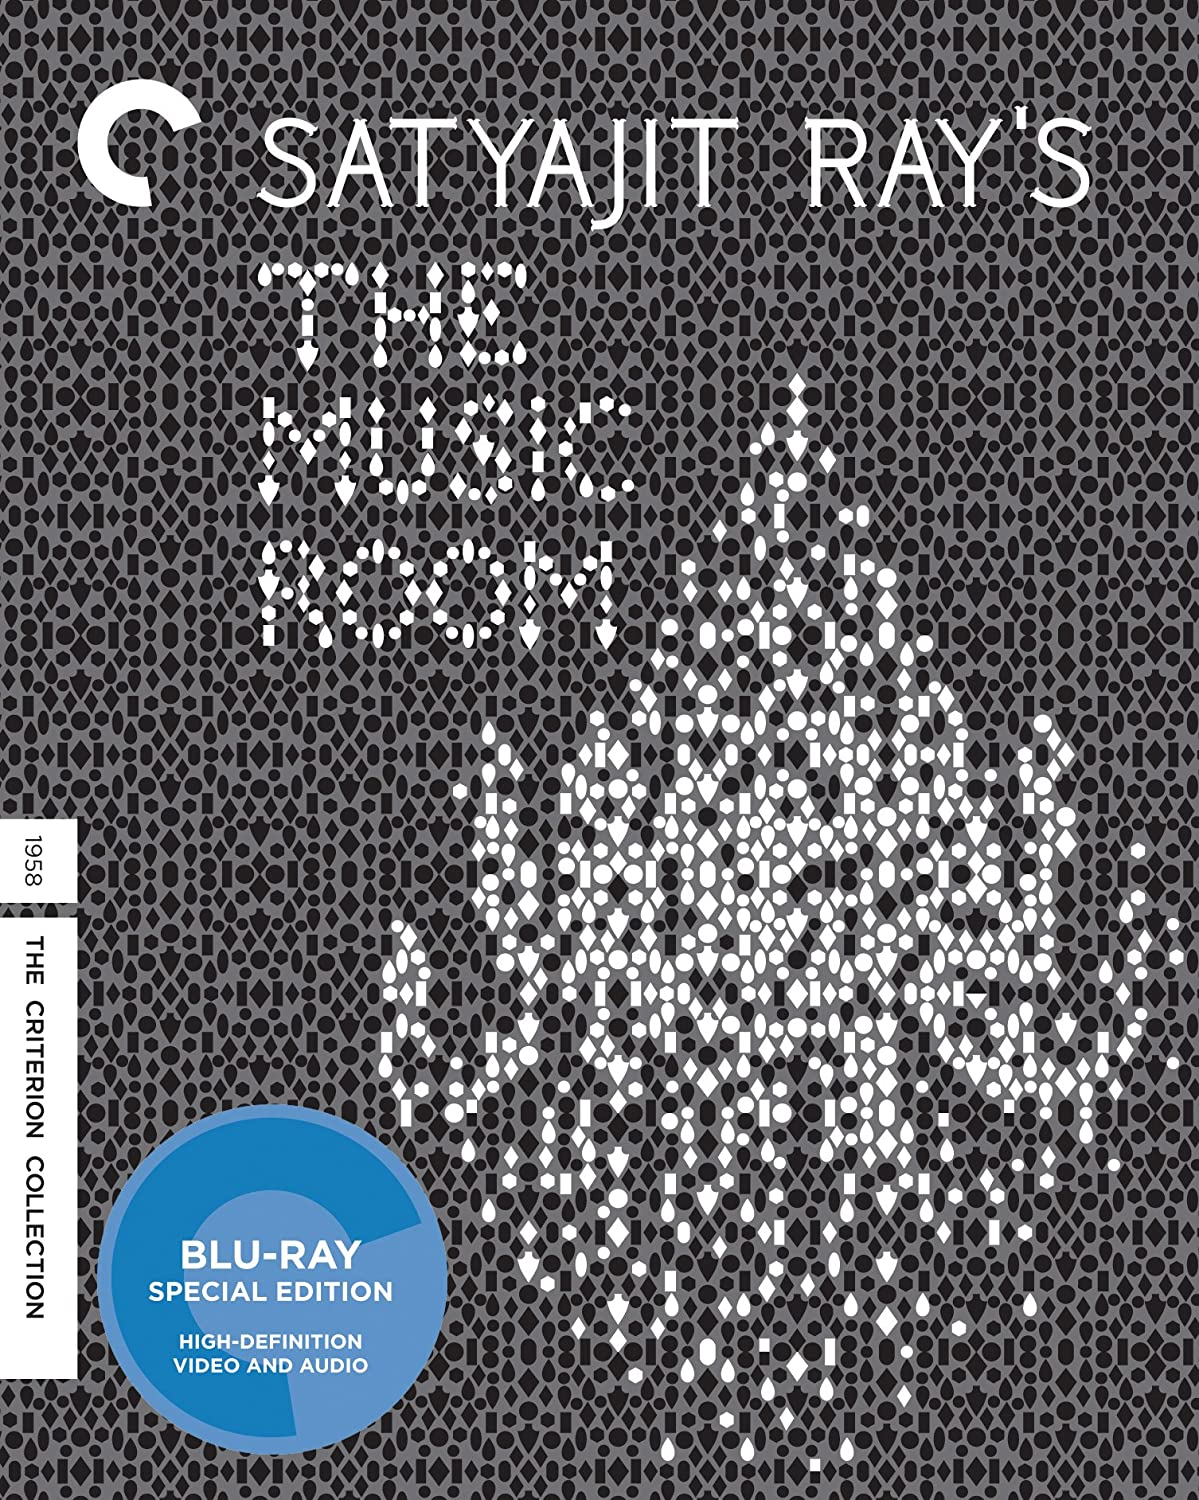 Music Room, The (Criterion) (Blu-Ray) Chhabi Biswas Satyajit Ray 17522065 Movie